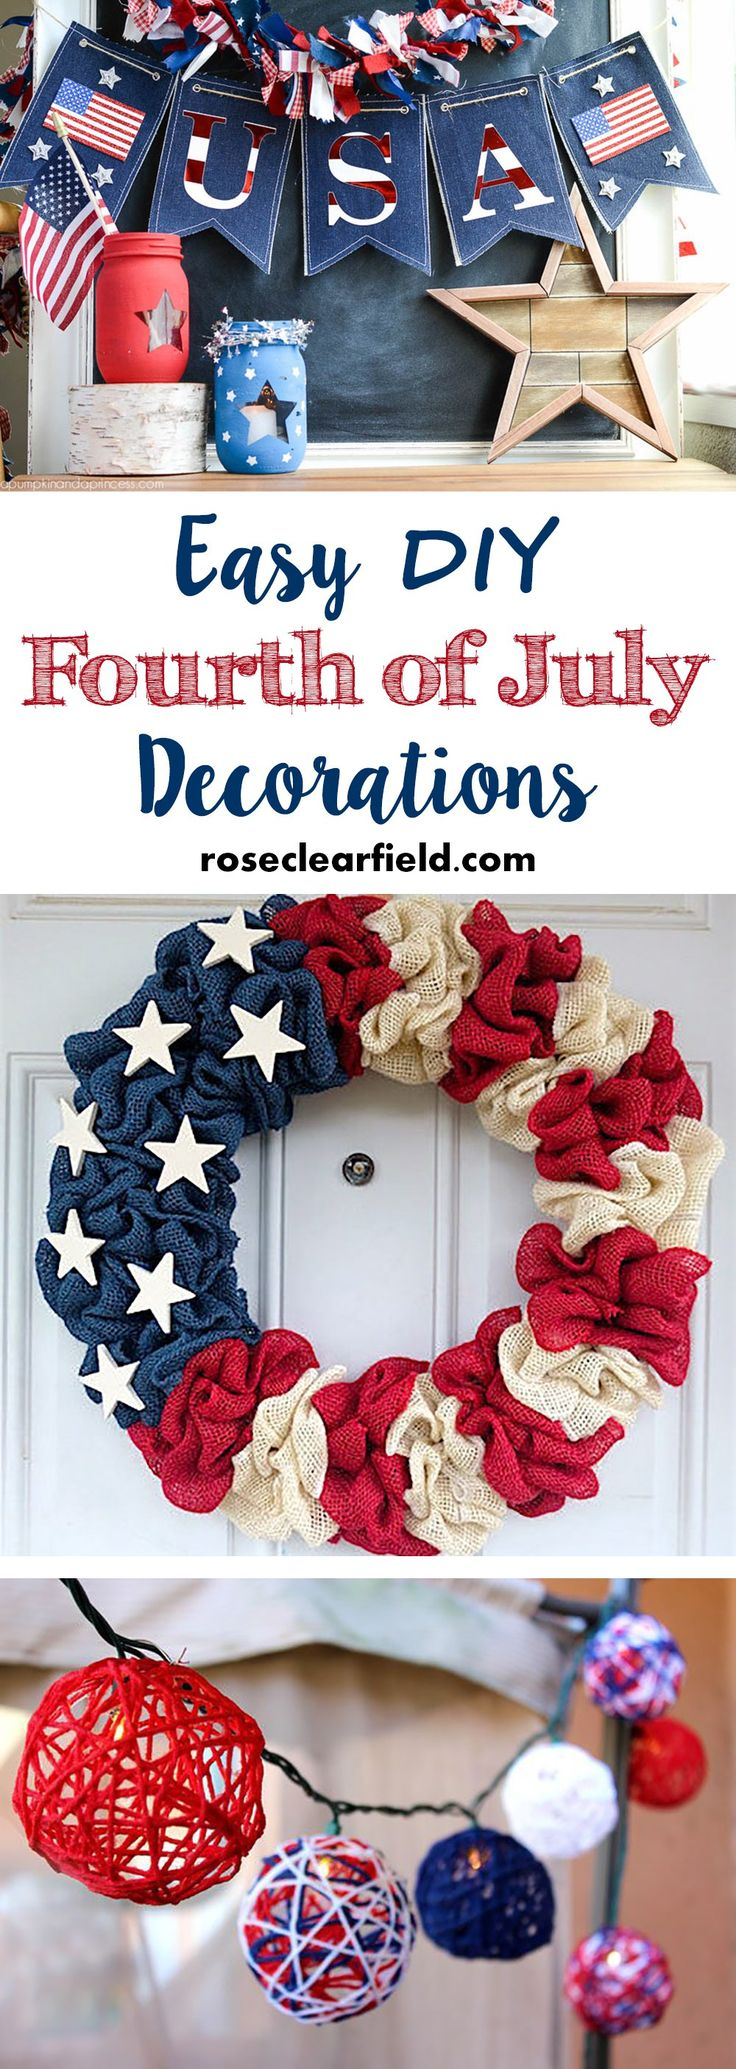 Easy DIY Fourth of July Decorations | http://www.roseclearfield.com